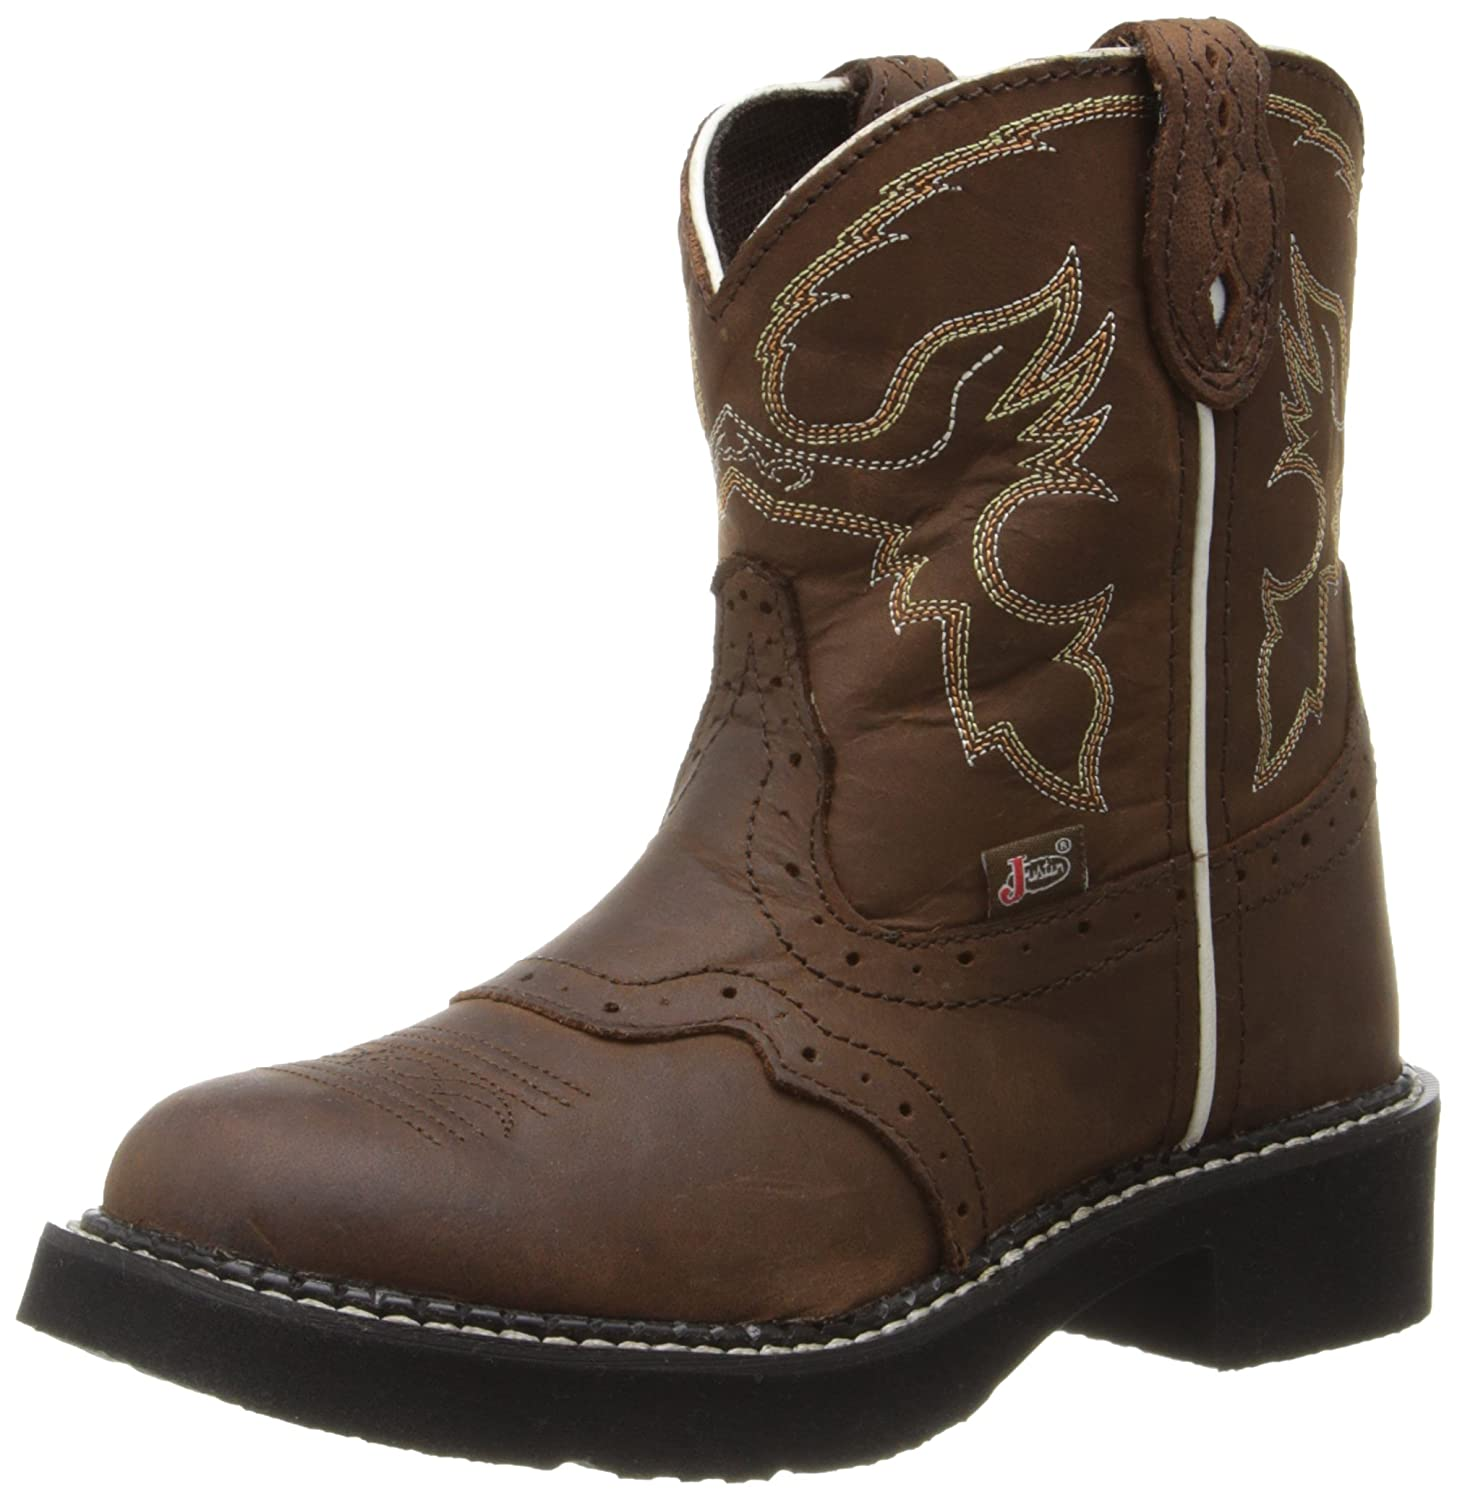 quality design 3ac24 086e1 Amazon.com | Justin Boots Gypsy Boot (Toddler/Little Kid/Big Kid ...